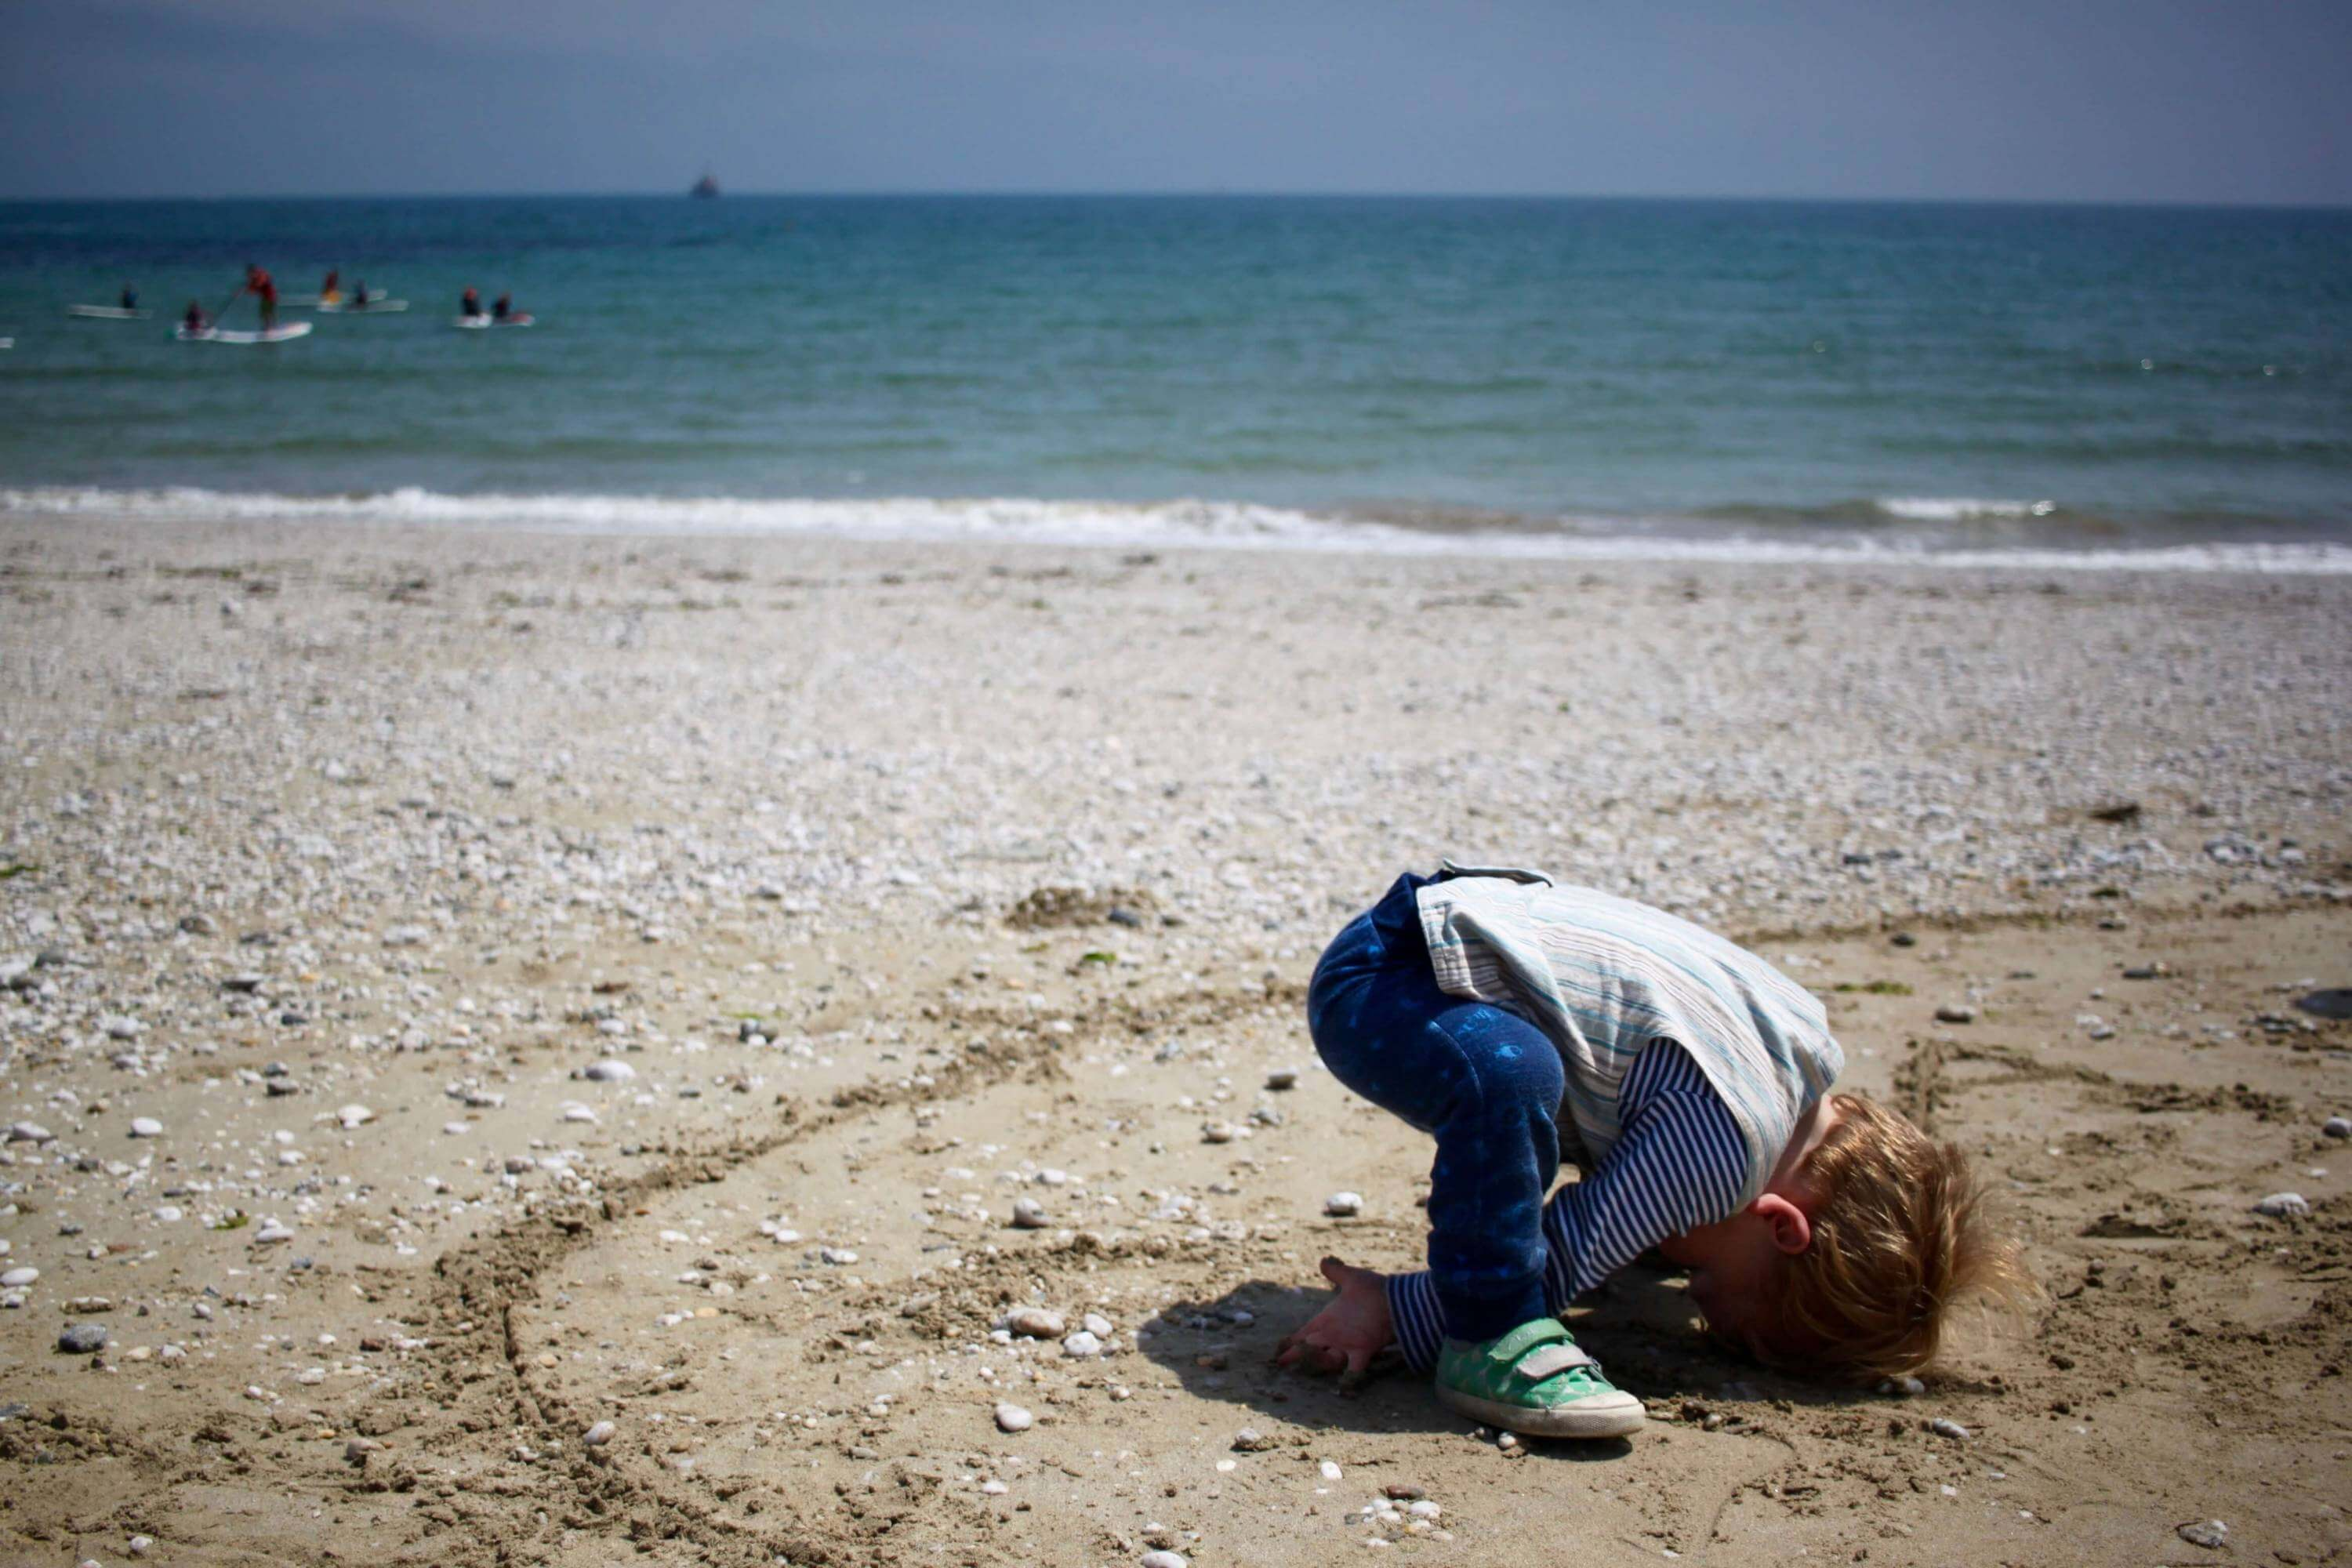 family, day out, beach, gylly beach, lovefalmouth, love falmouth, falmouth, photography competition, #LoveFalmouth, #LoveTheSea